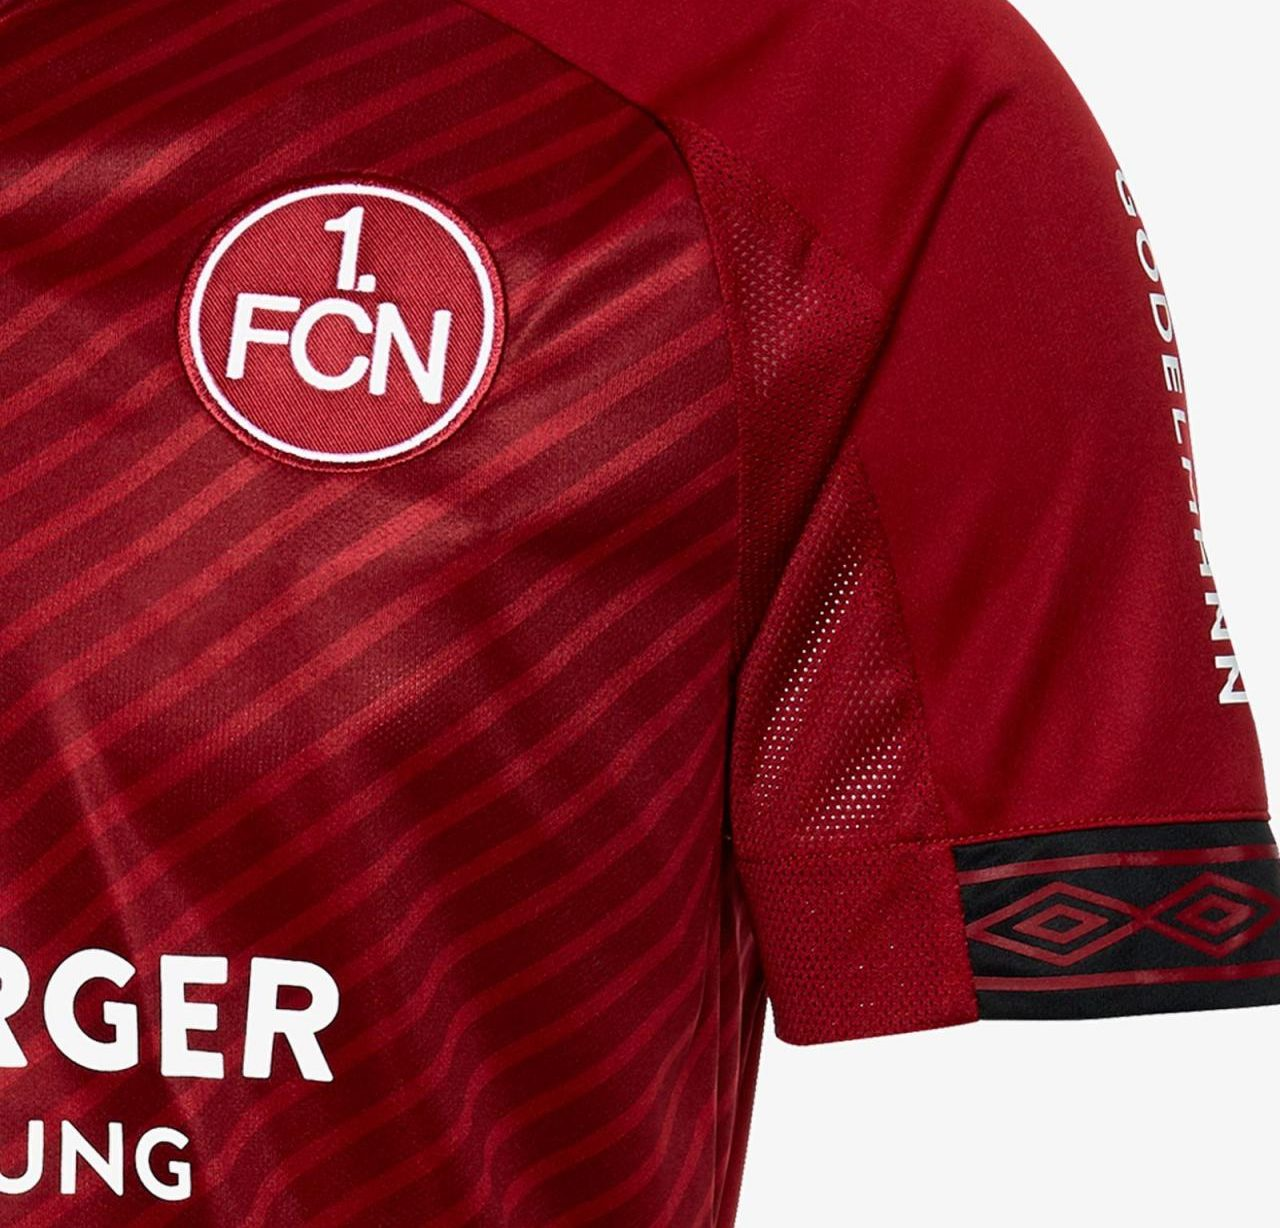 Nürnberg 2018-19 Umbro Home and Away Kit